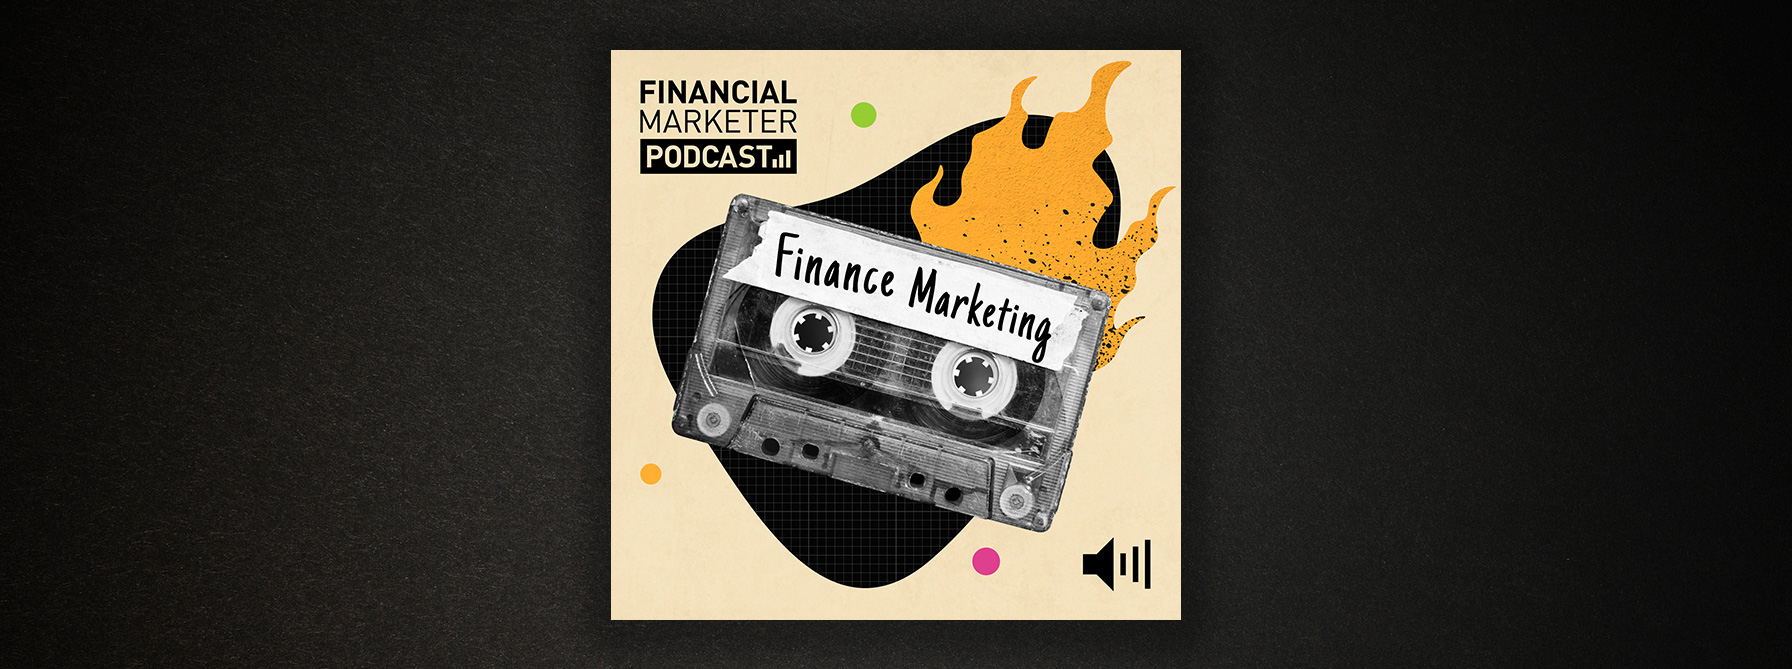 why-beats-and-best-practice-finance-marketing-go-hand-in-hand-banner header